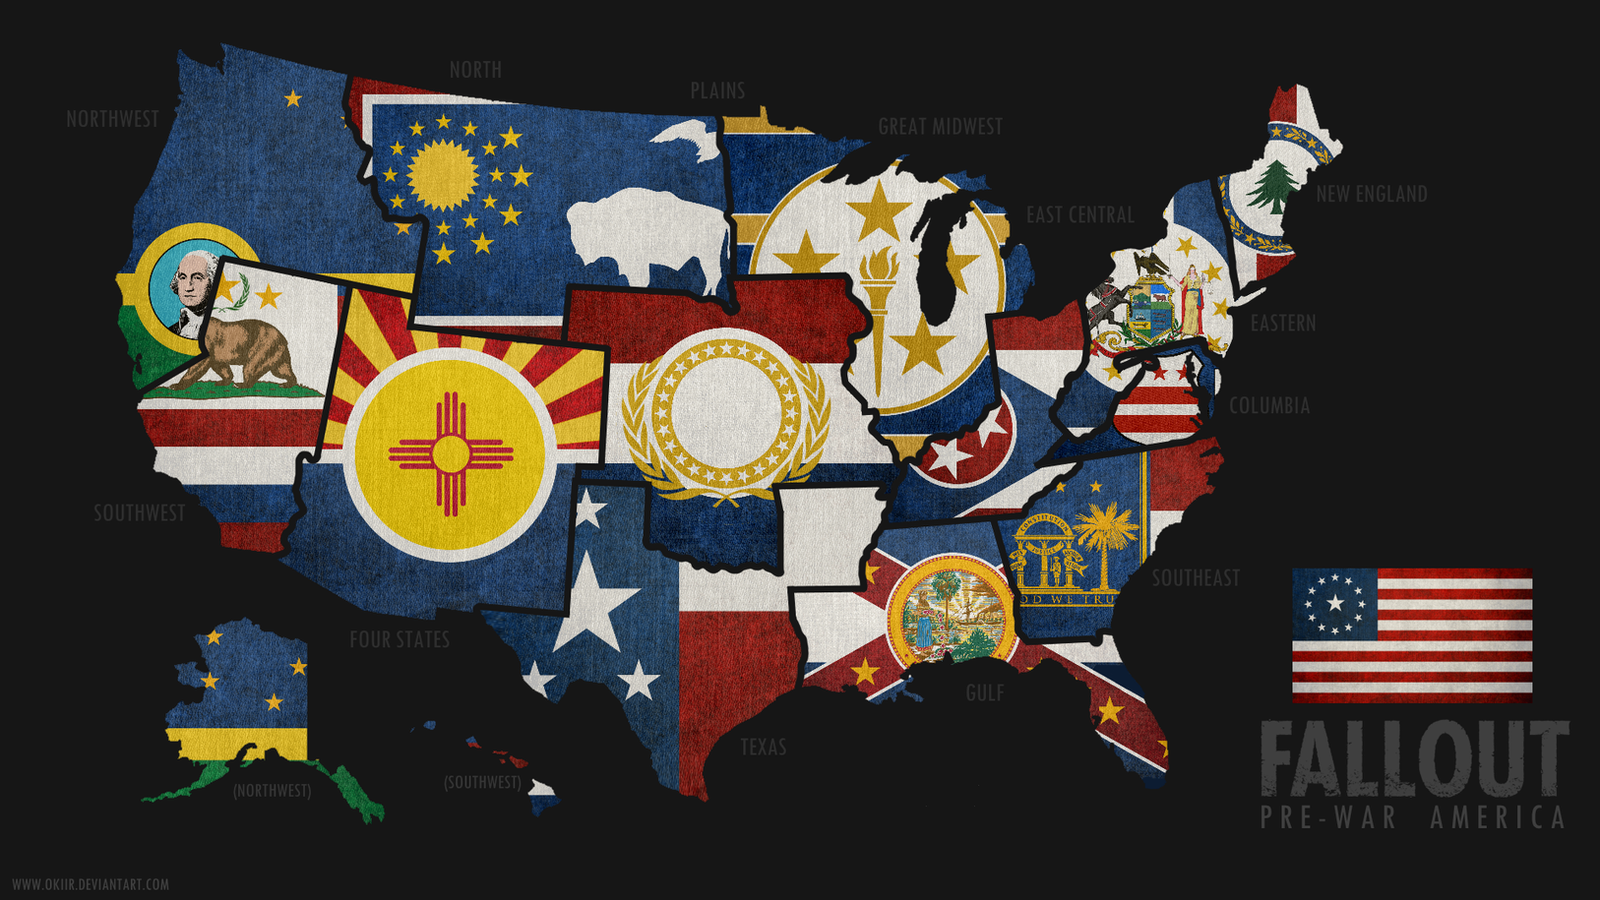 map of the plains states with Fallout Map Of Pre War America 539747861 on 9620797719 also Content in addition Somalia moreover America First Republican Party Map also Whousmap.